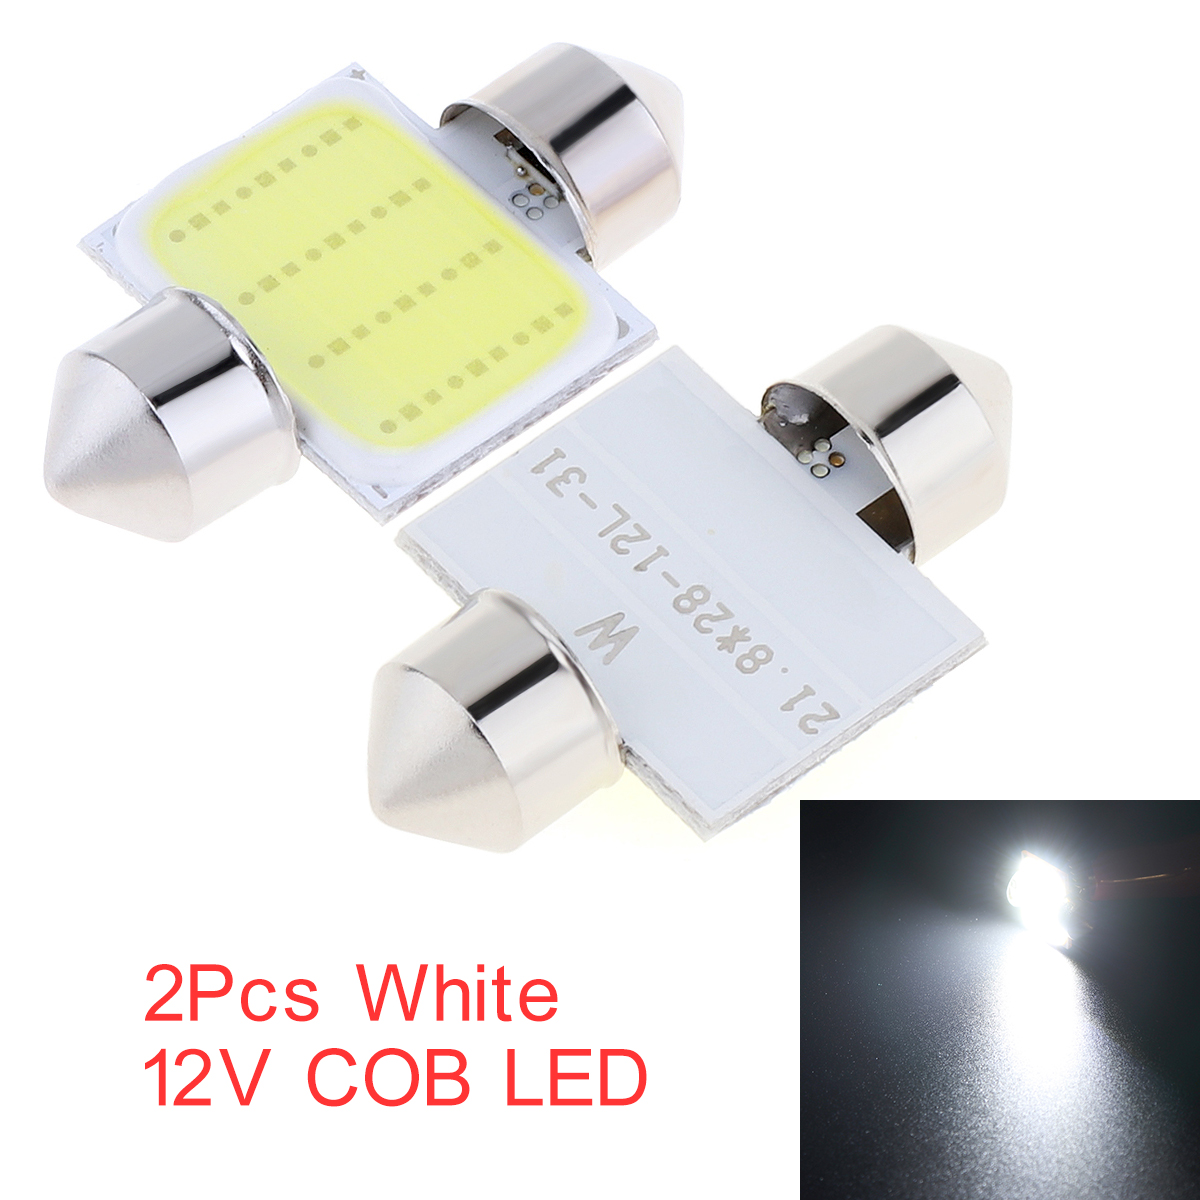 Image 1 - 2pcs/lot LED Dome light 12  SMD CoB  Car Auto Interior Map Dome License Plate Replacement Light Kit White Lamp Set-in Car Headlight Bulbs(LED) from Automobiles & Motorcycles